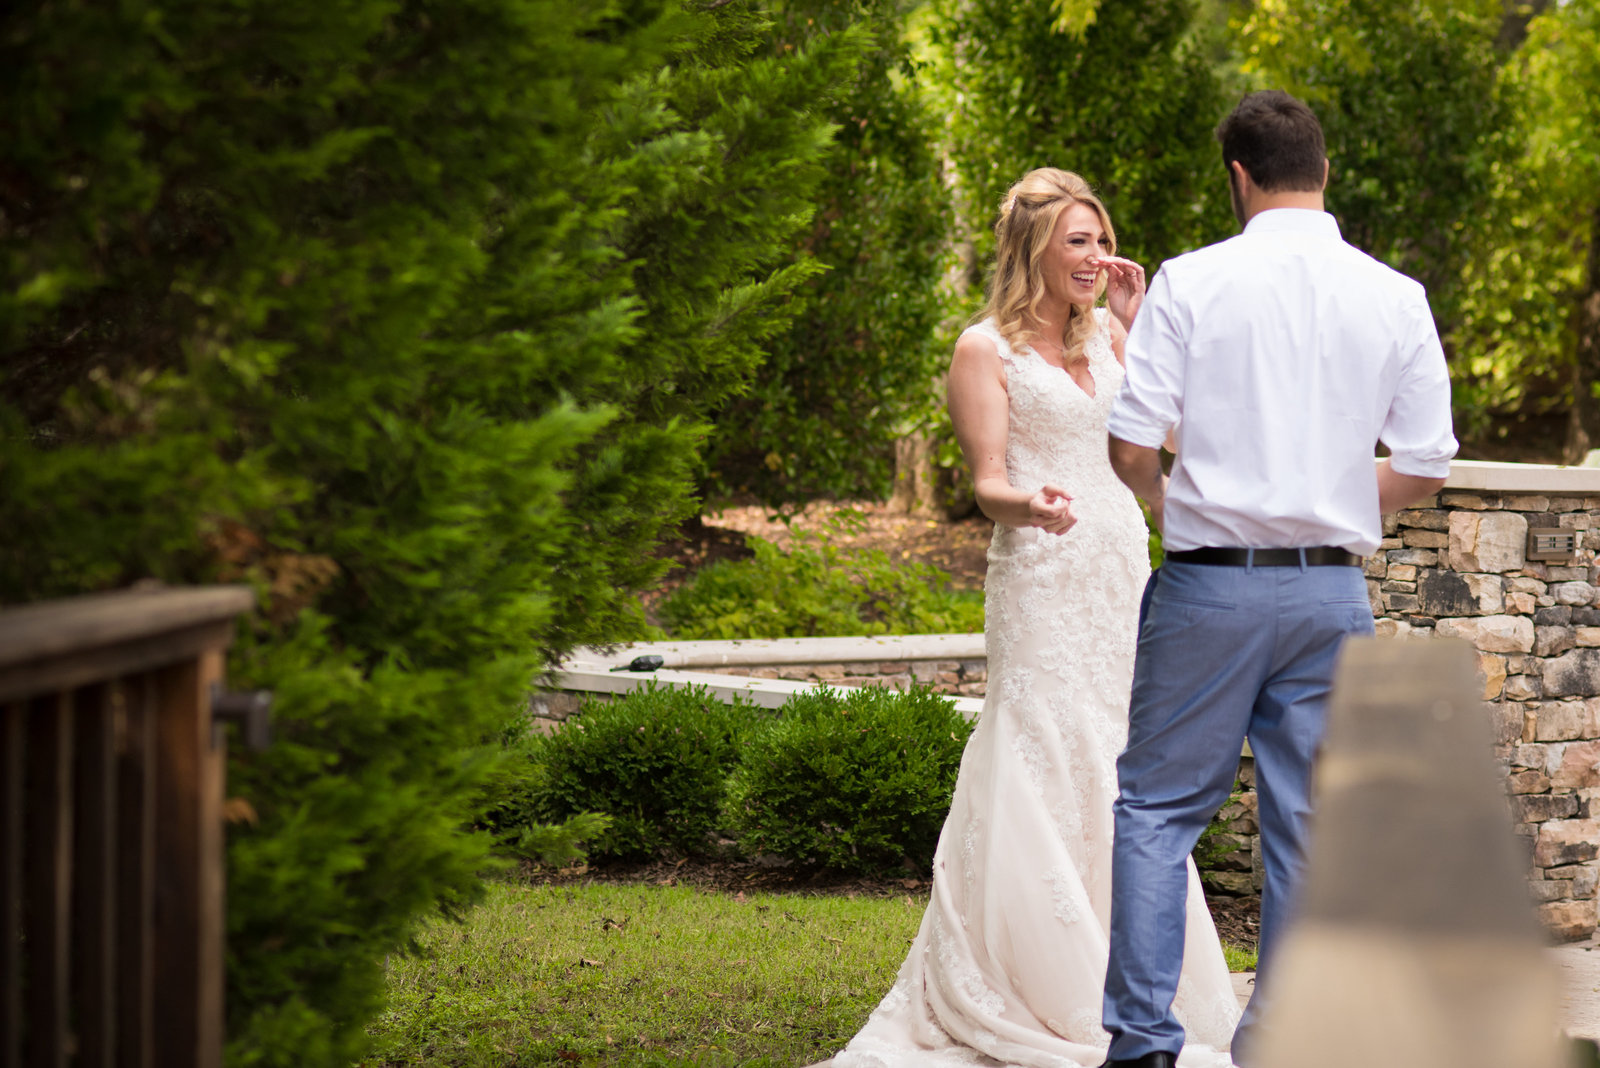 Nashville_Wedding_Loveless_Barn_Portraits-16